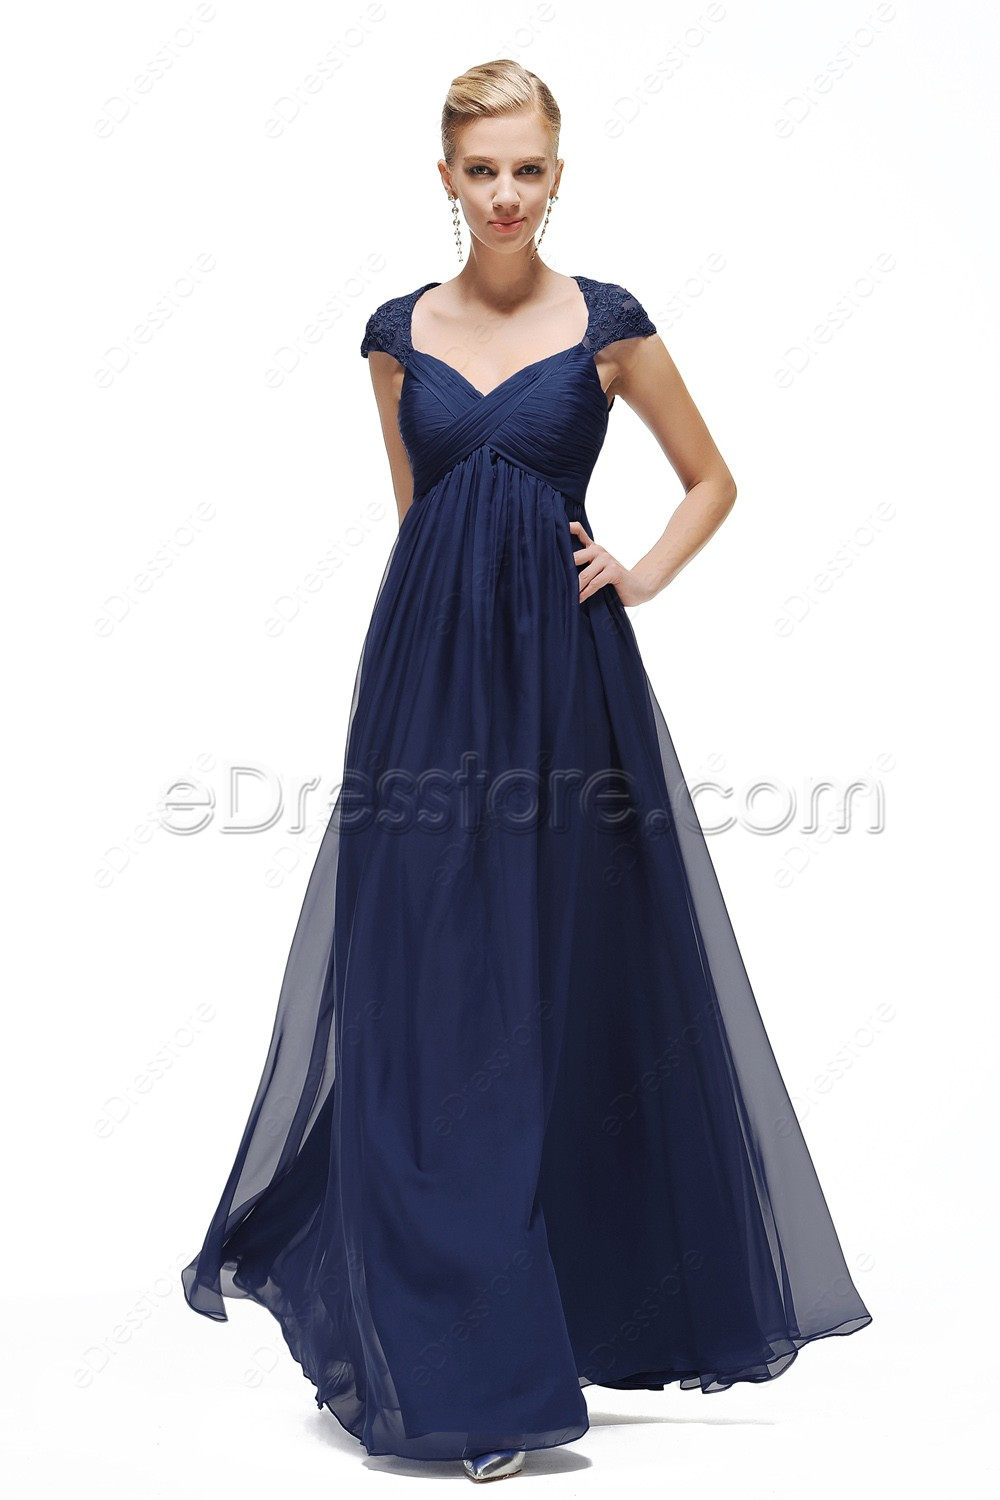 Modest Prom Dresses Under 100 - Discount Wedding Dresses